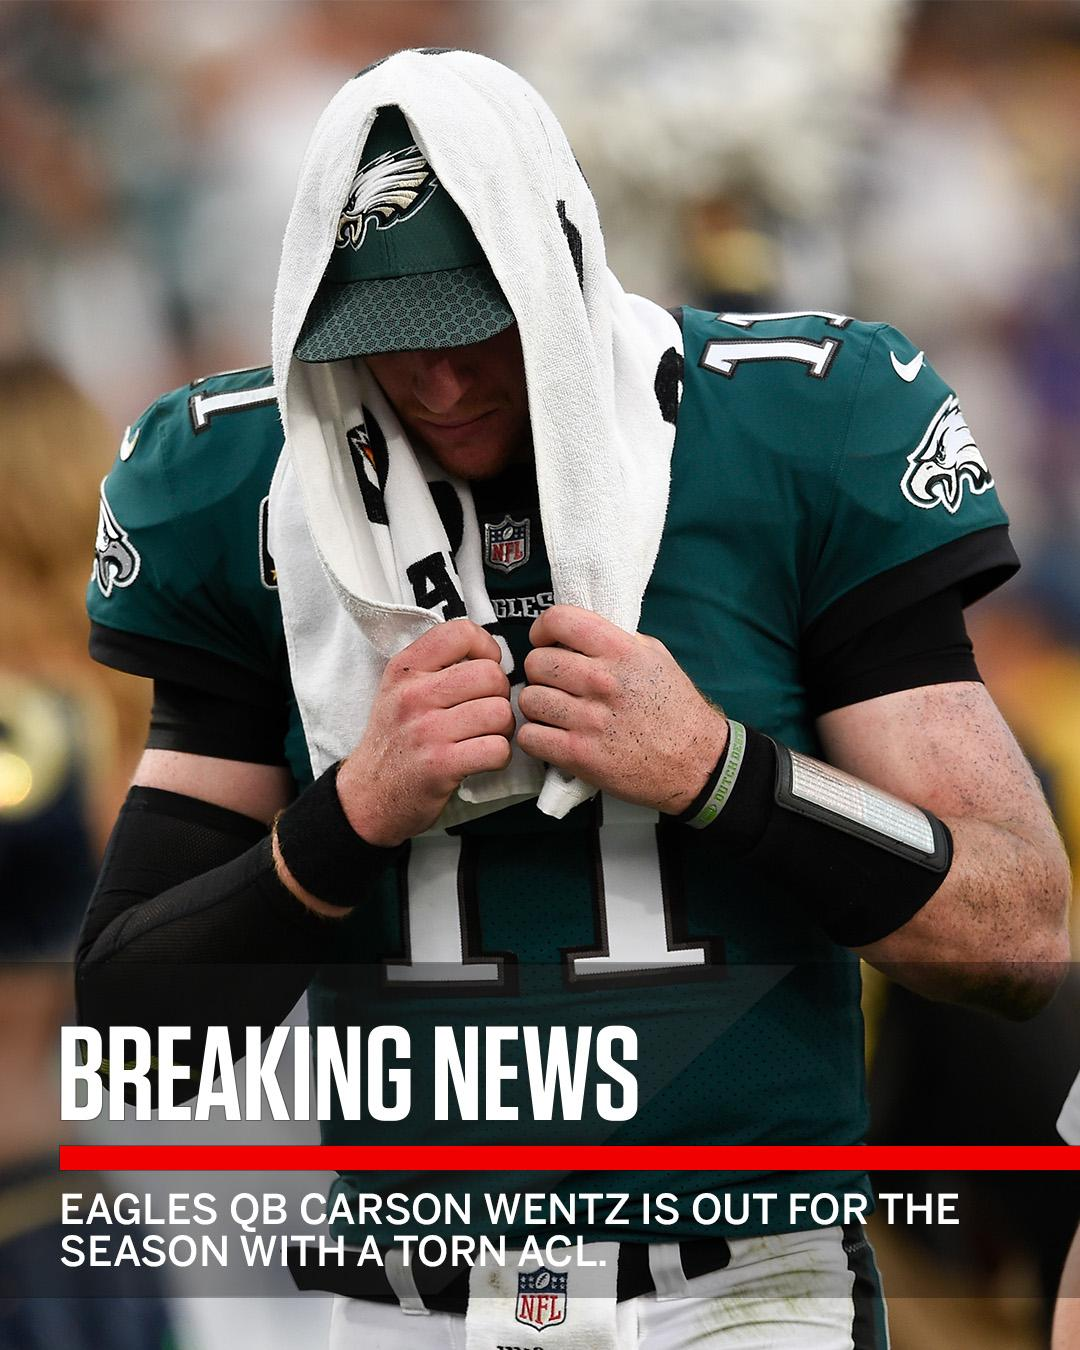 Breaking: The Eagles confirm that Carson Wentz has a torn ACL, ending his season. https://t.co/3MzVxDk0Gy